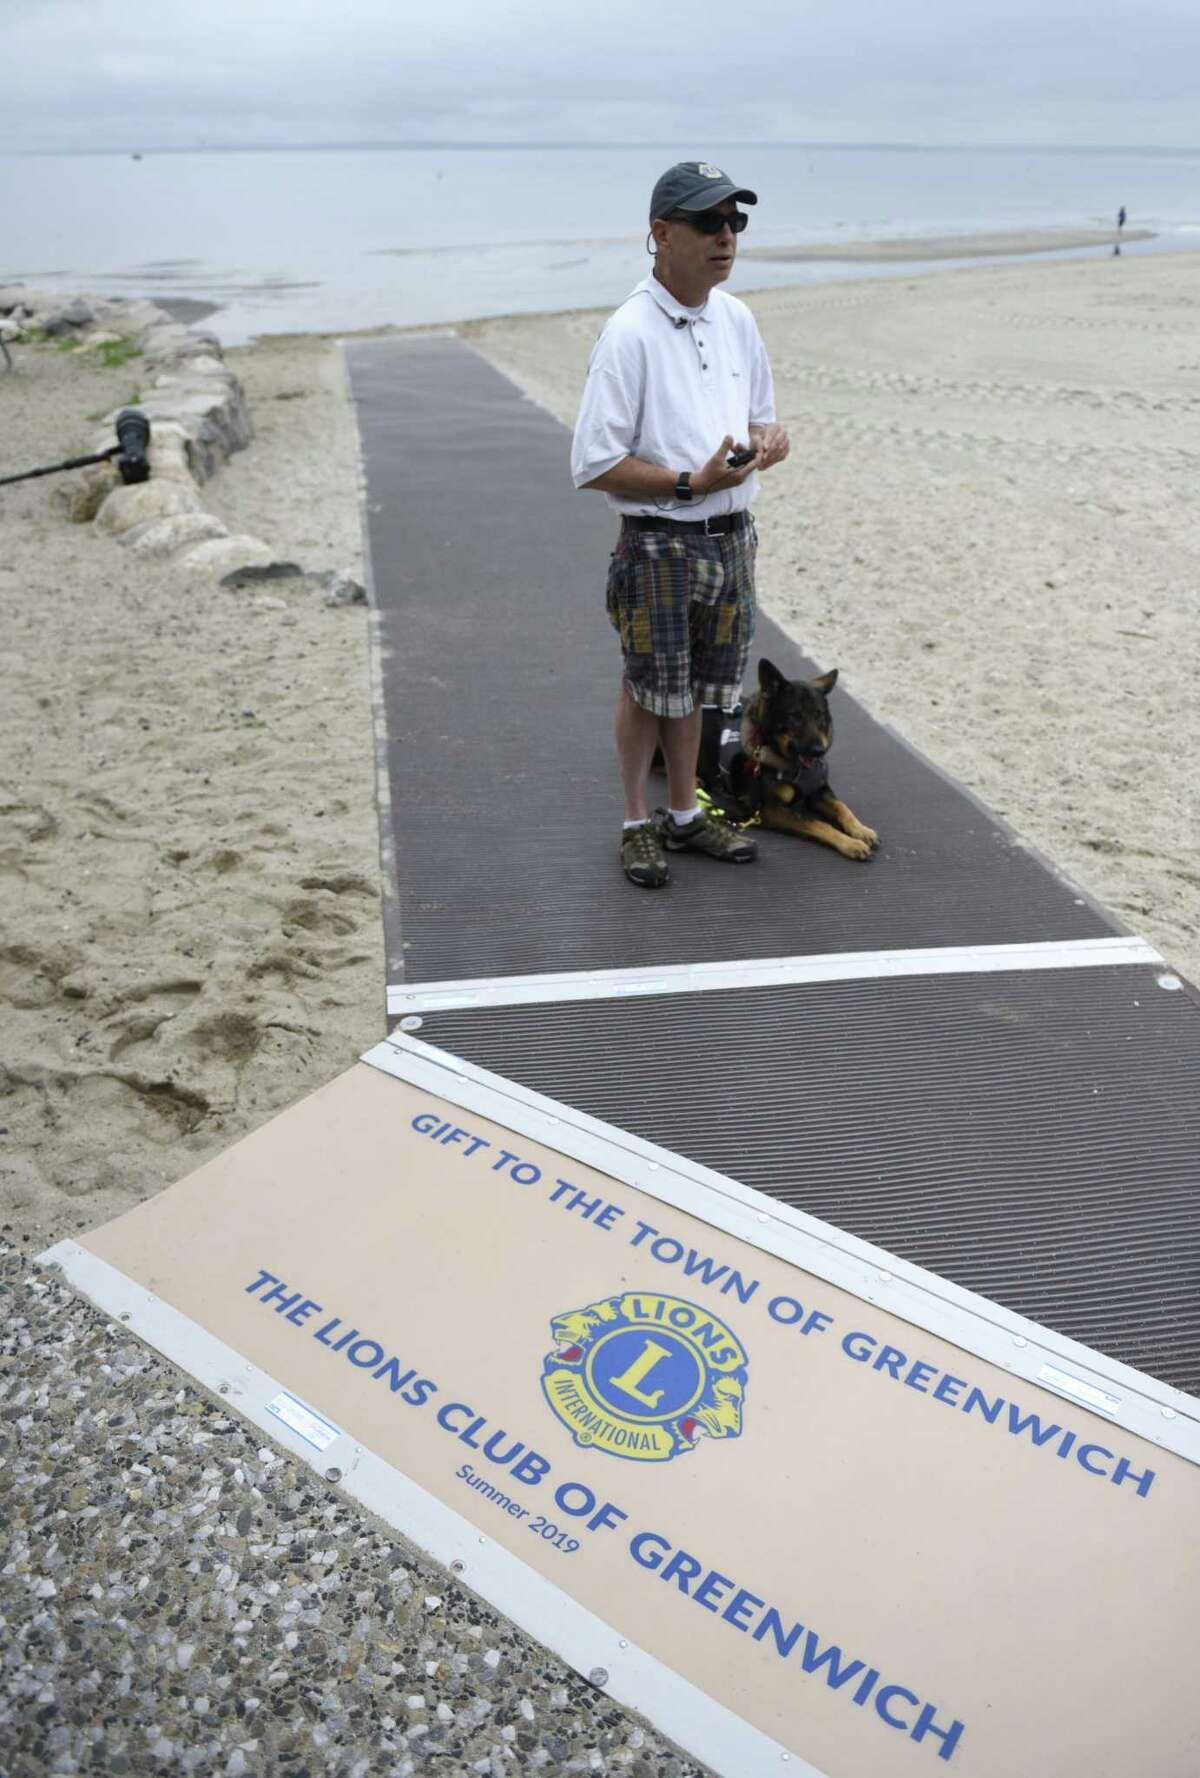 Alan Gunzburg, who serves on the First Selectman's Advisory Committee for People with Disabilities, stands on the new ADA accessible ramp on the Greenwich Point Park beach in Old Greenwich, Conn. Wednesday, June 19, 2019. The town held a ribbon-cutting for a new accessible beach mat that will make it far easier for people with disabilities to get to the beach.